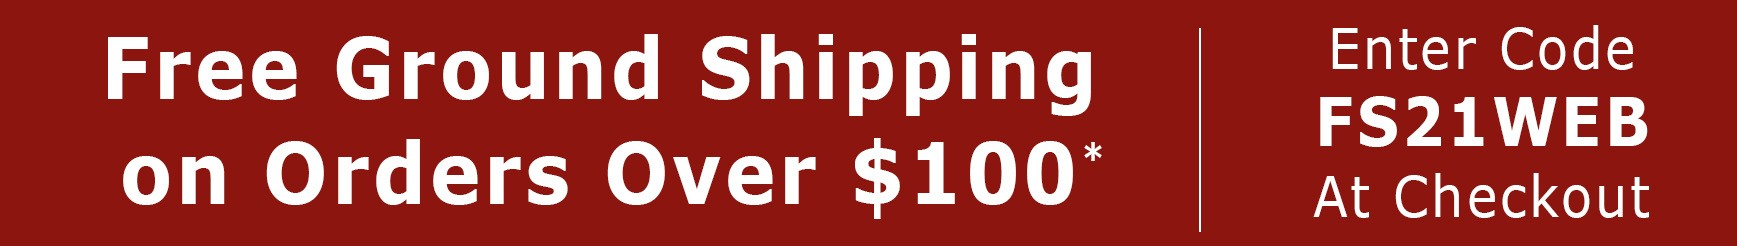 Free ground shipping on orders over $100, use code FS21W.